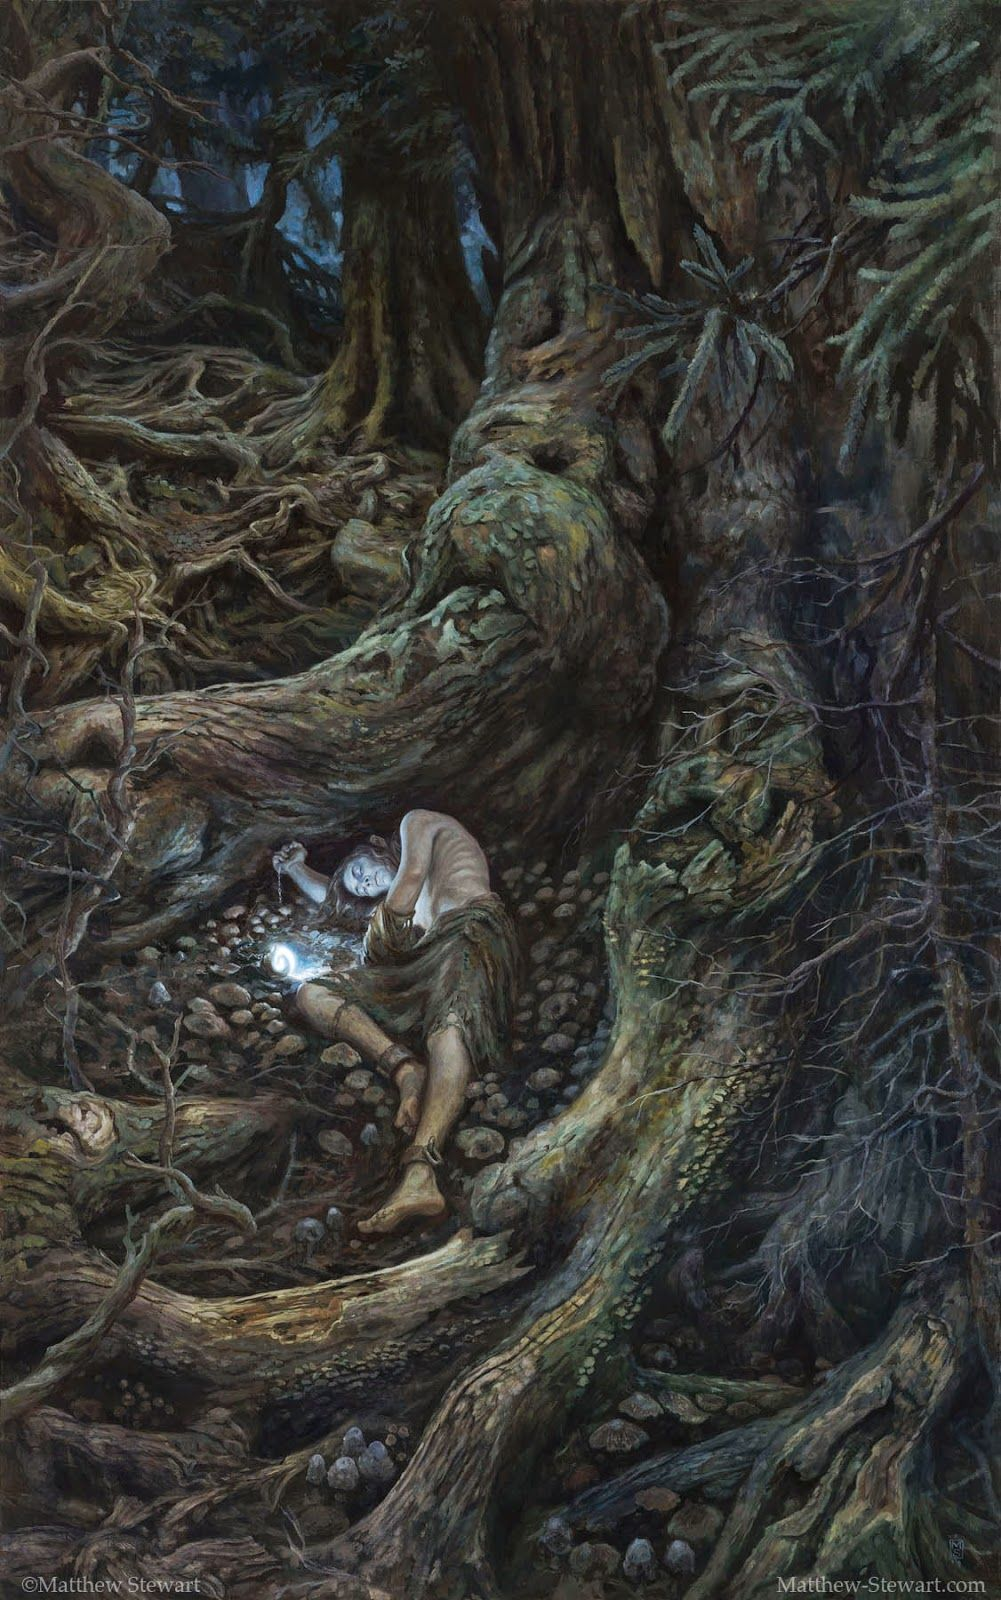 "In the Forest Under Night by Matthew Stewart - This is a scene from the tale by J.R.R. Tolkien that appears in both The Silmarillion and in a longer form in The Children of Hurin. Gwindor is a Noldor Elf lord captured in ""The Battle of Unnumbered Tears"". At this catastrophic defeat Gwindor was kept alive as a slave. He escaped into the forest Taur-nu-Fuin, which means ""great forest under night"". He lost a hand in his escape, and carries a Feanorian lamp."